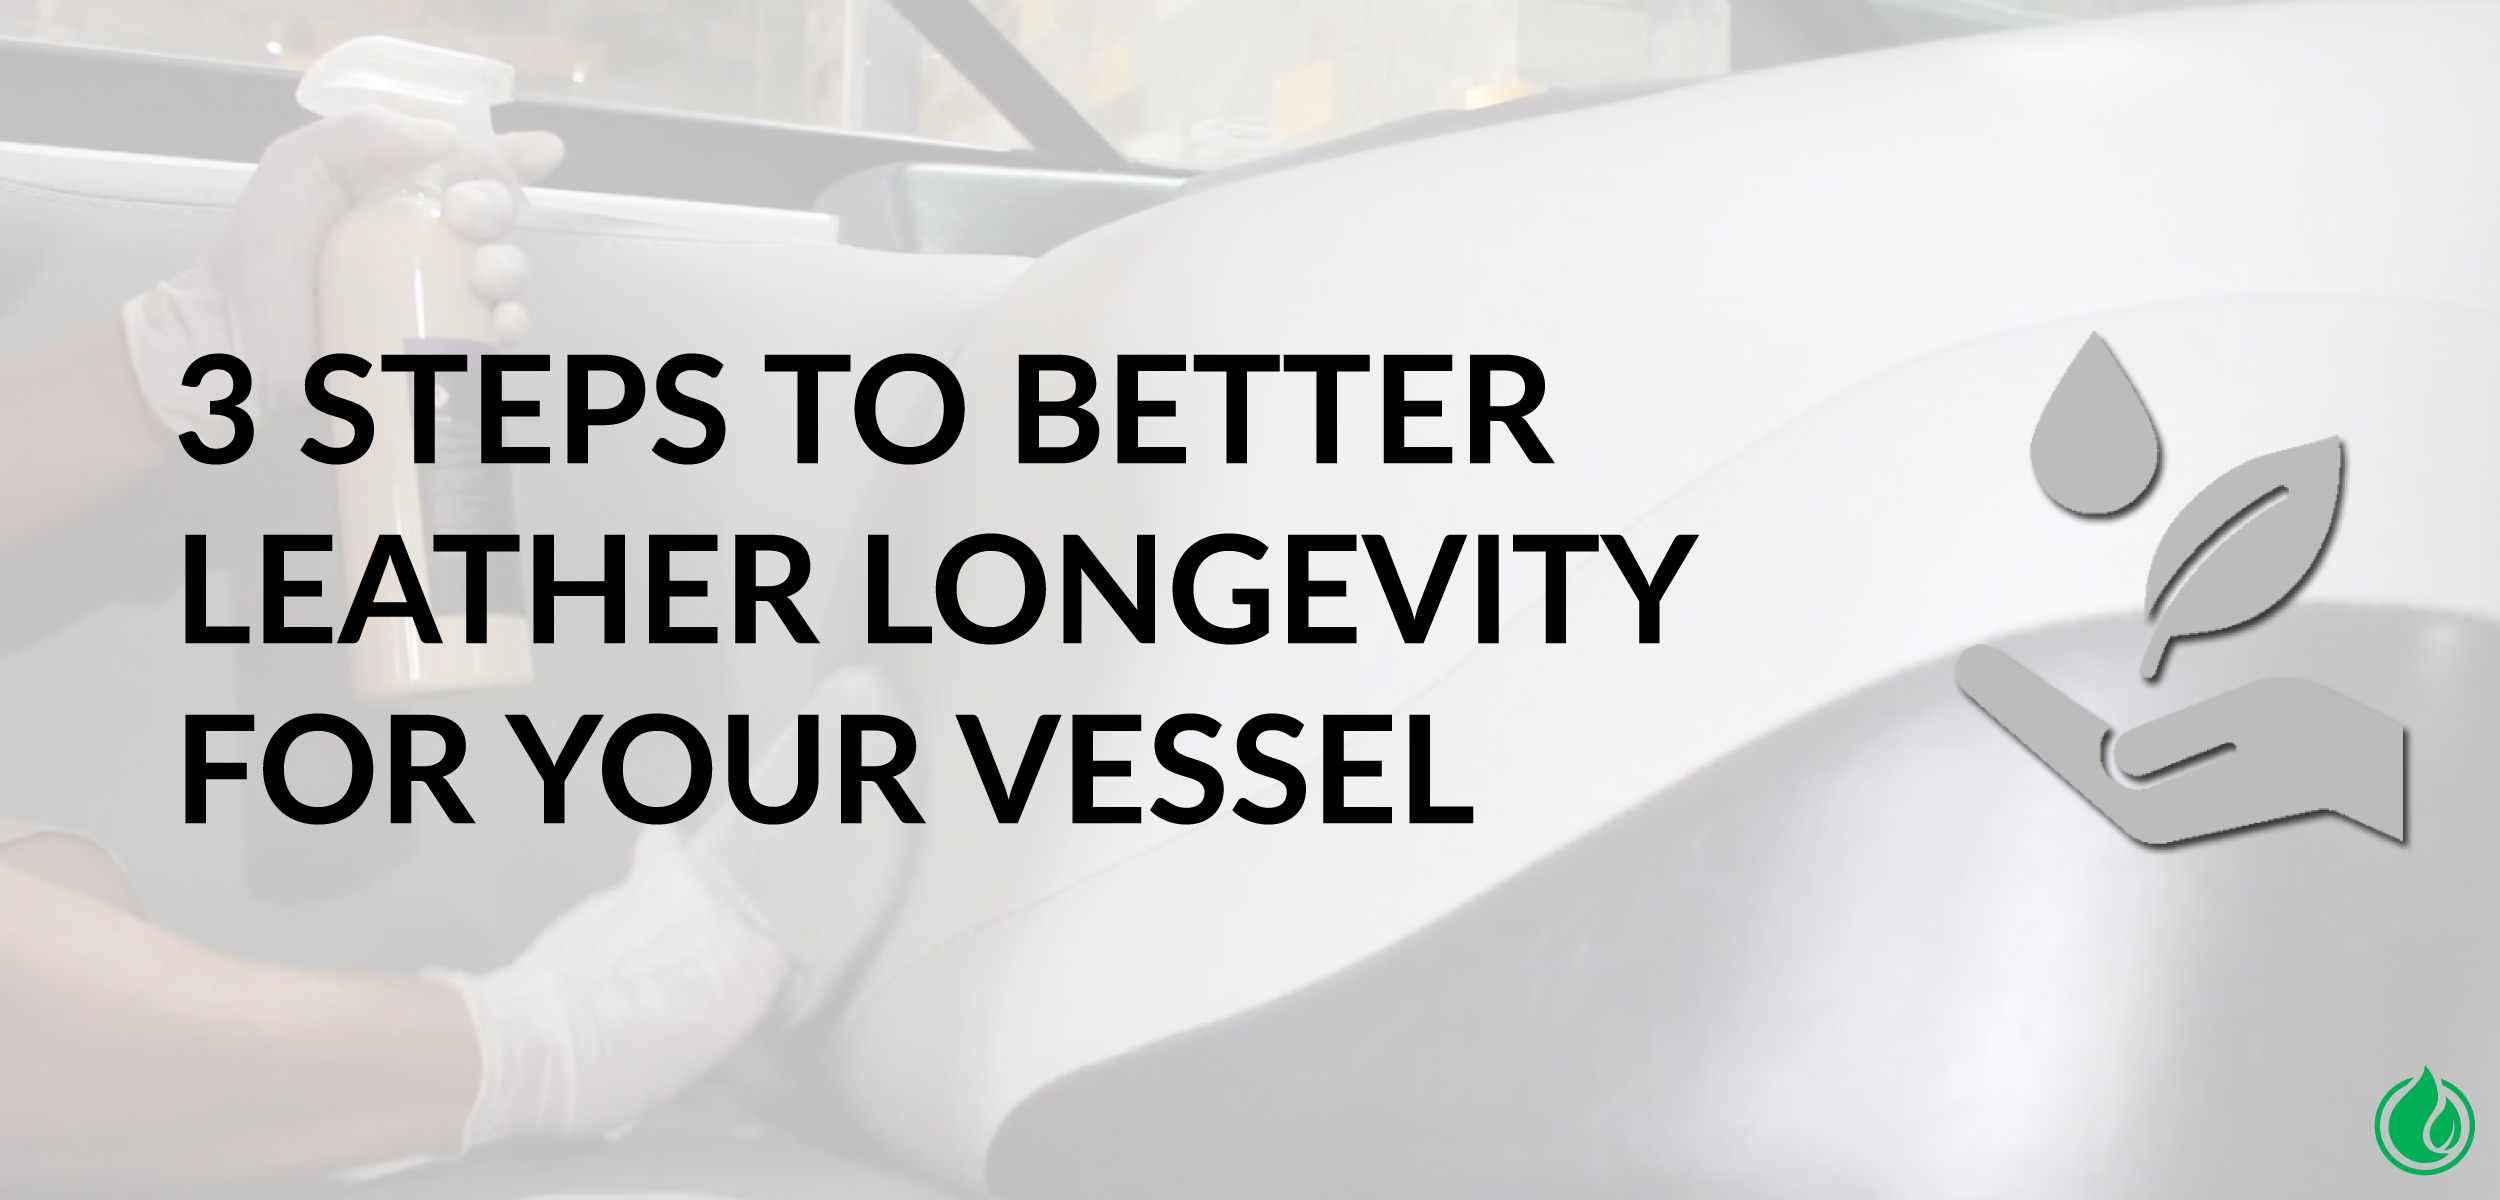 3-STEPS-TO-BETTER-LEATHER-LONGEVITY-ON-VESSEL-BOAT-YACHT-PONTOON